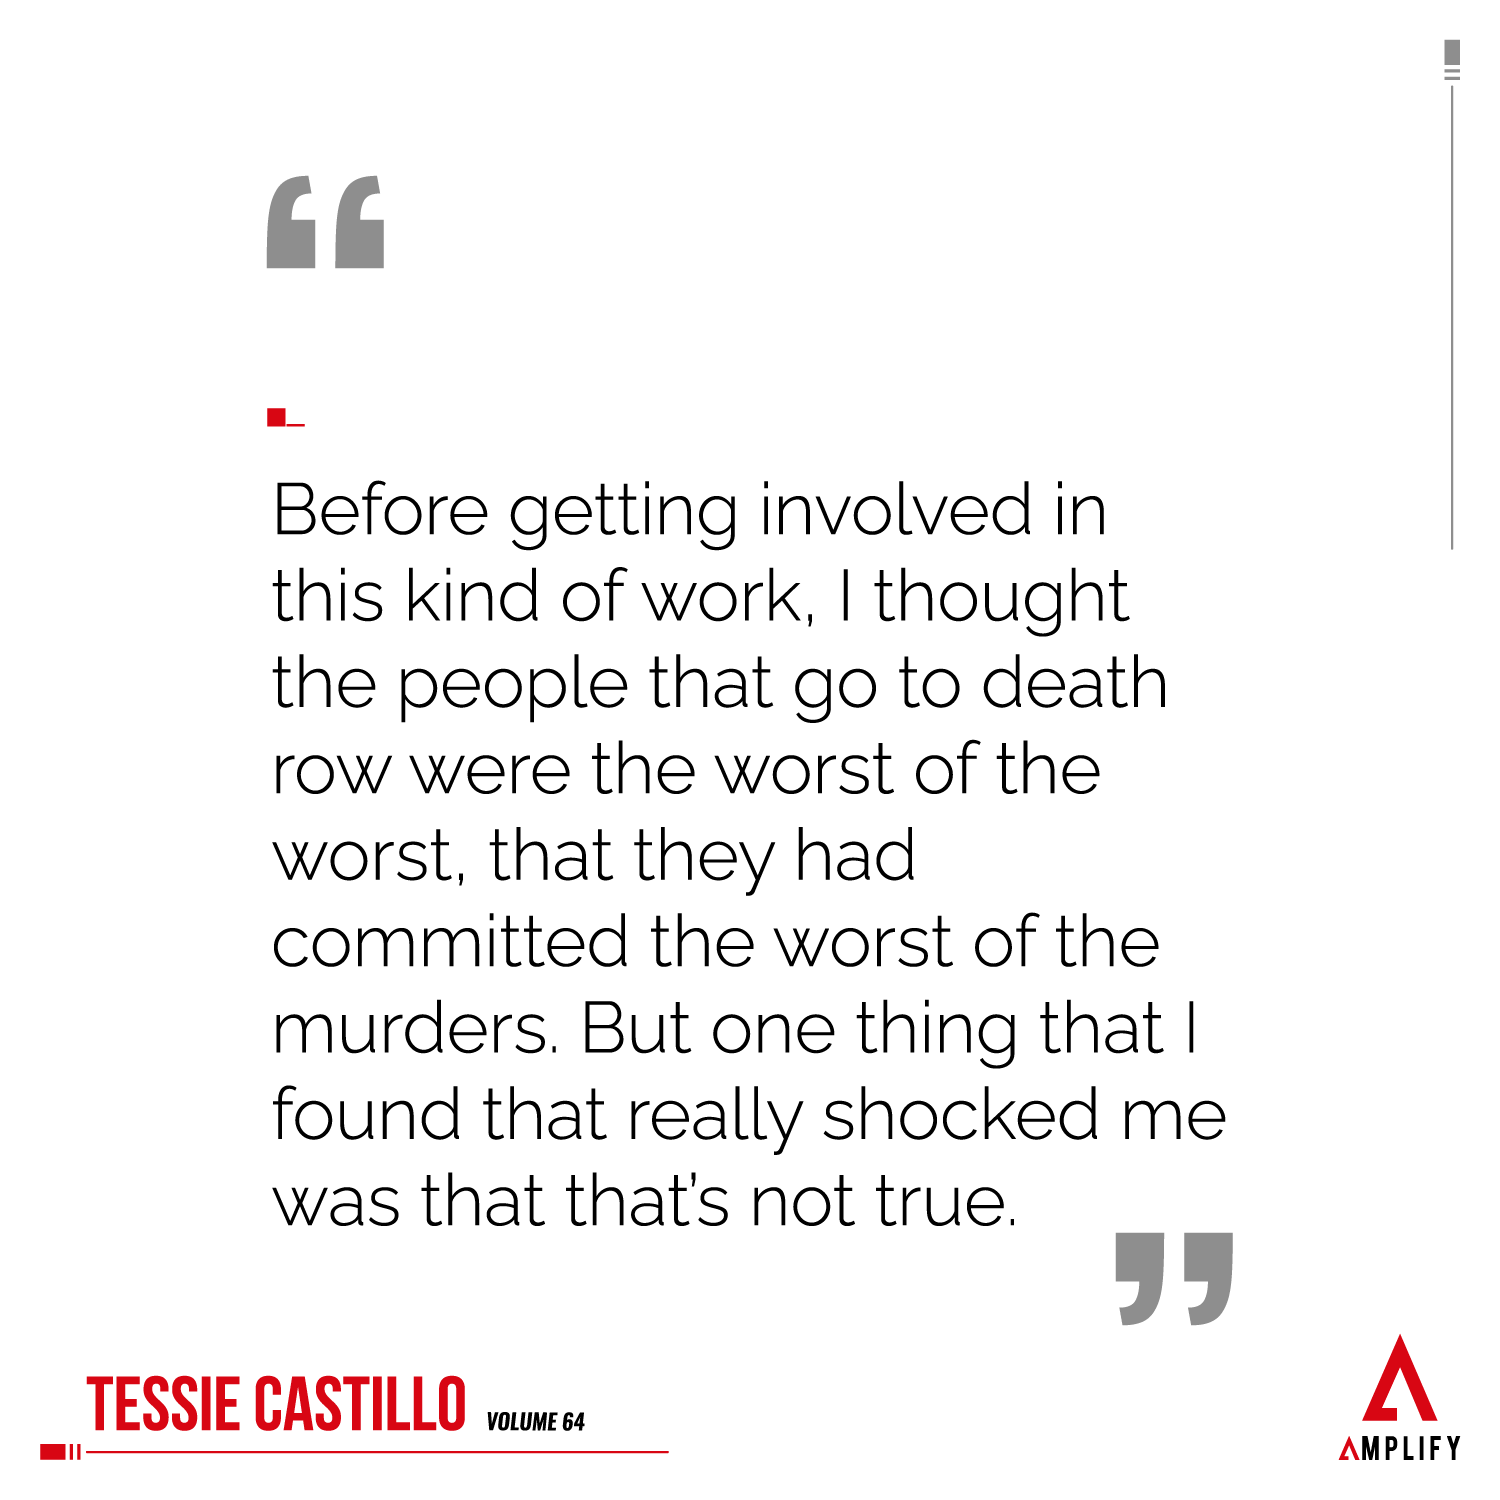 Quote: Before getting involved in this kind of work, I thought the people that go to death row were the worst of the worst, that they had committed the worst of the murders. But one thing that I found that really shocked me was that that's not true.